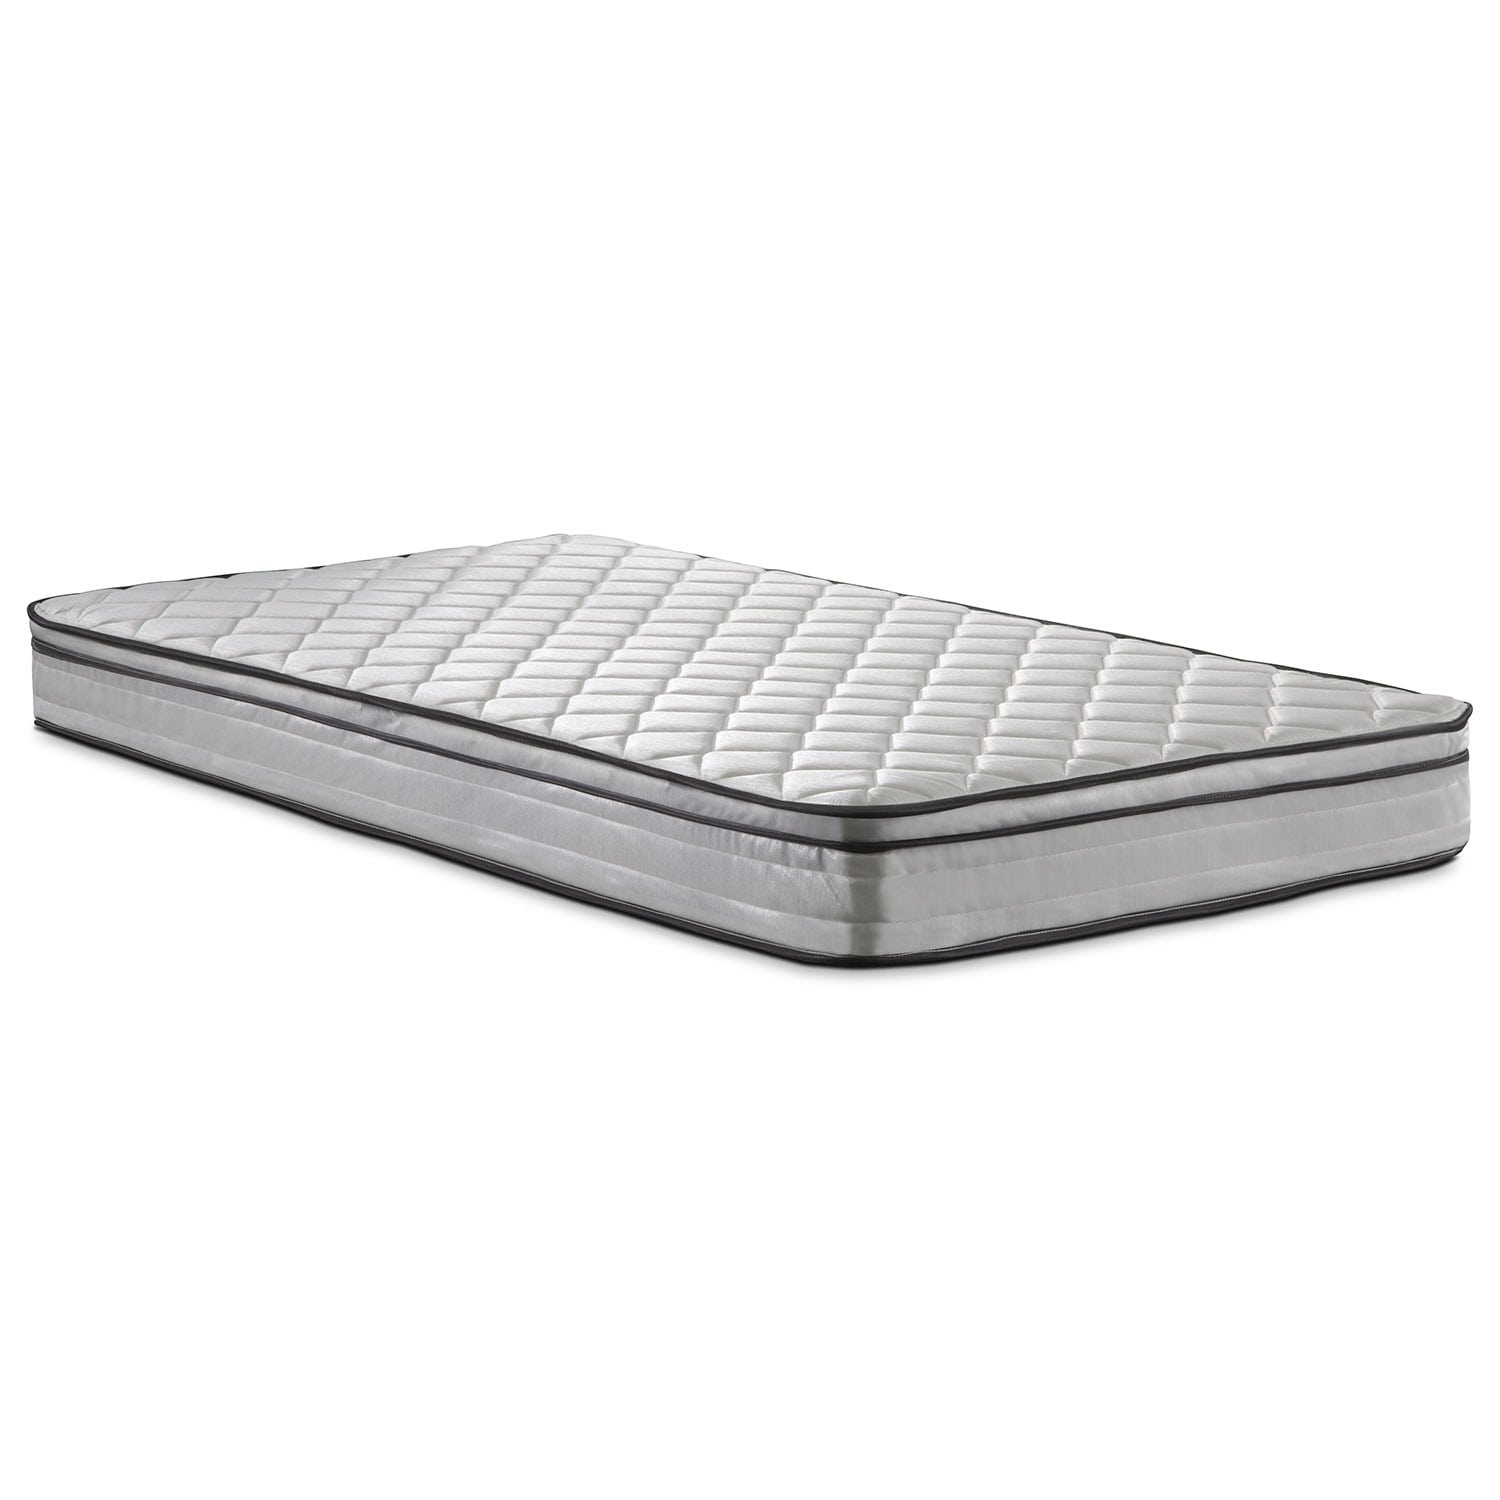 Mattresses and Bedding - Mirage Medium Firm Twin Mattress